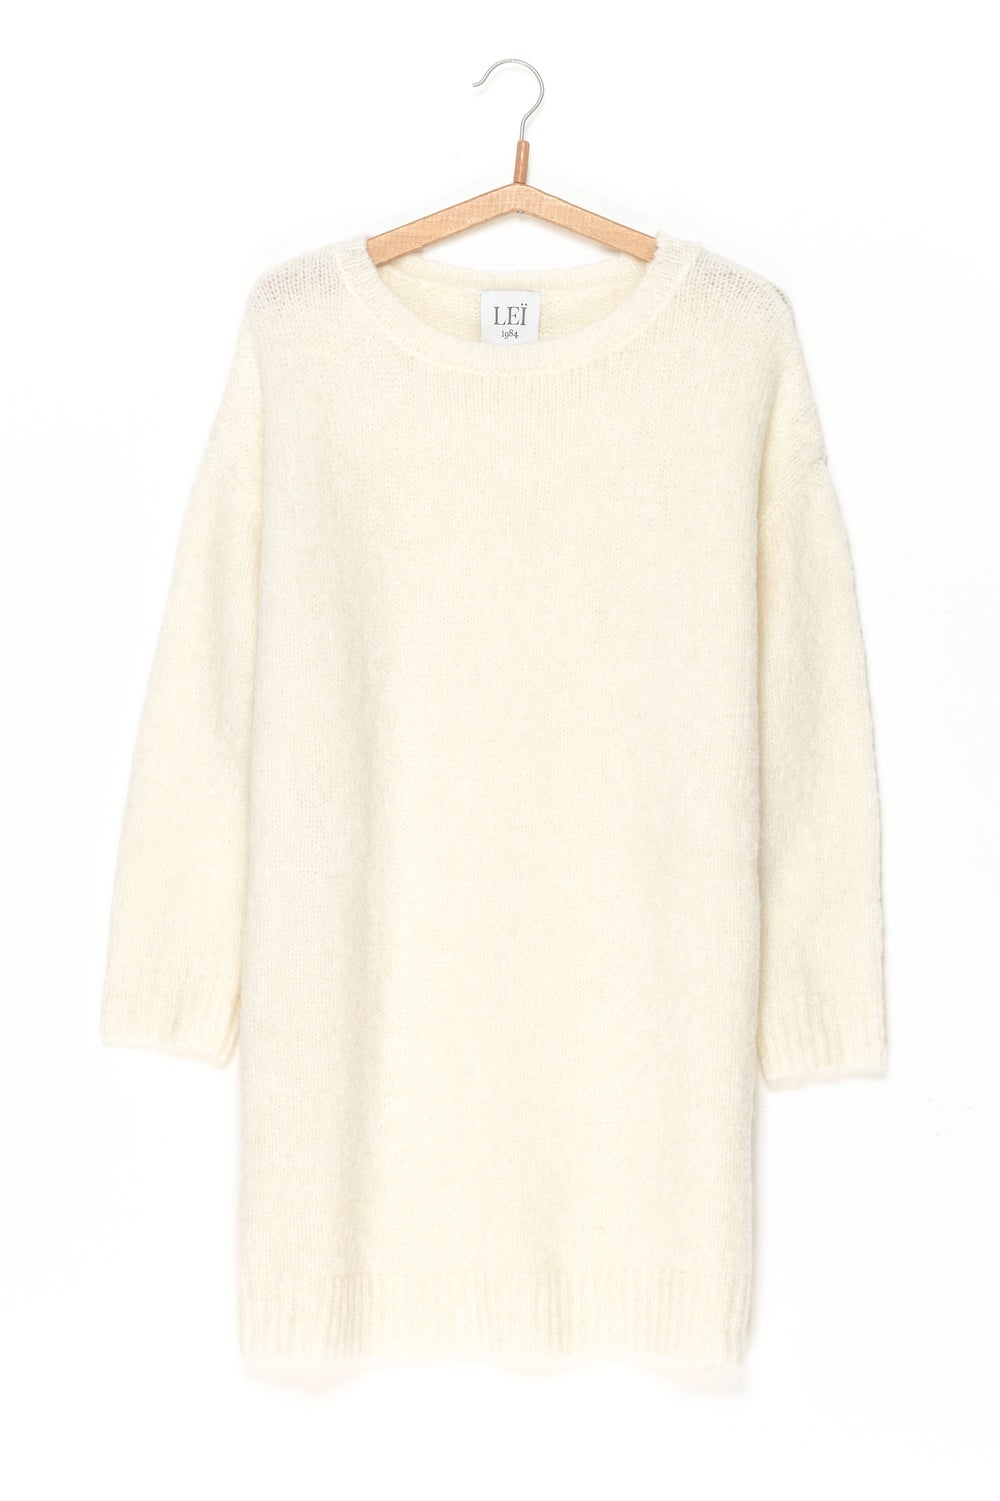 Image of Robe-pull CHLOE 149€ -50%